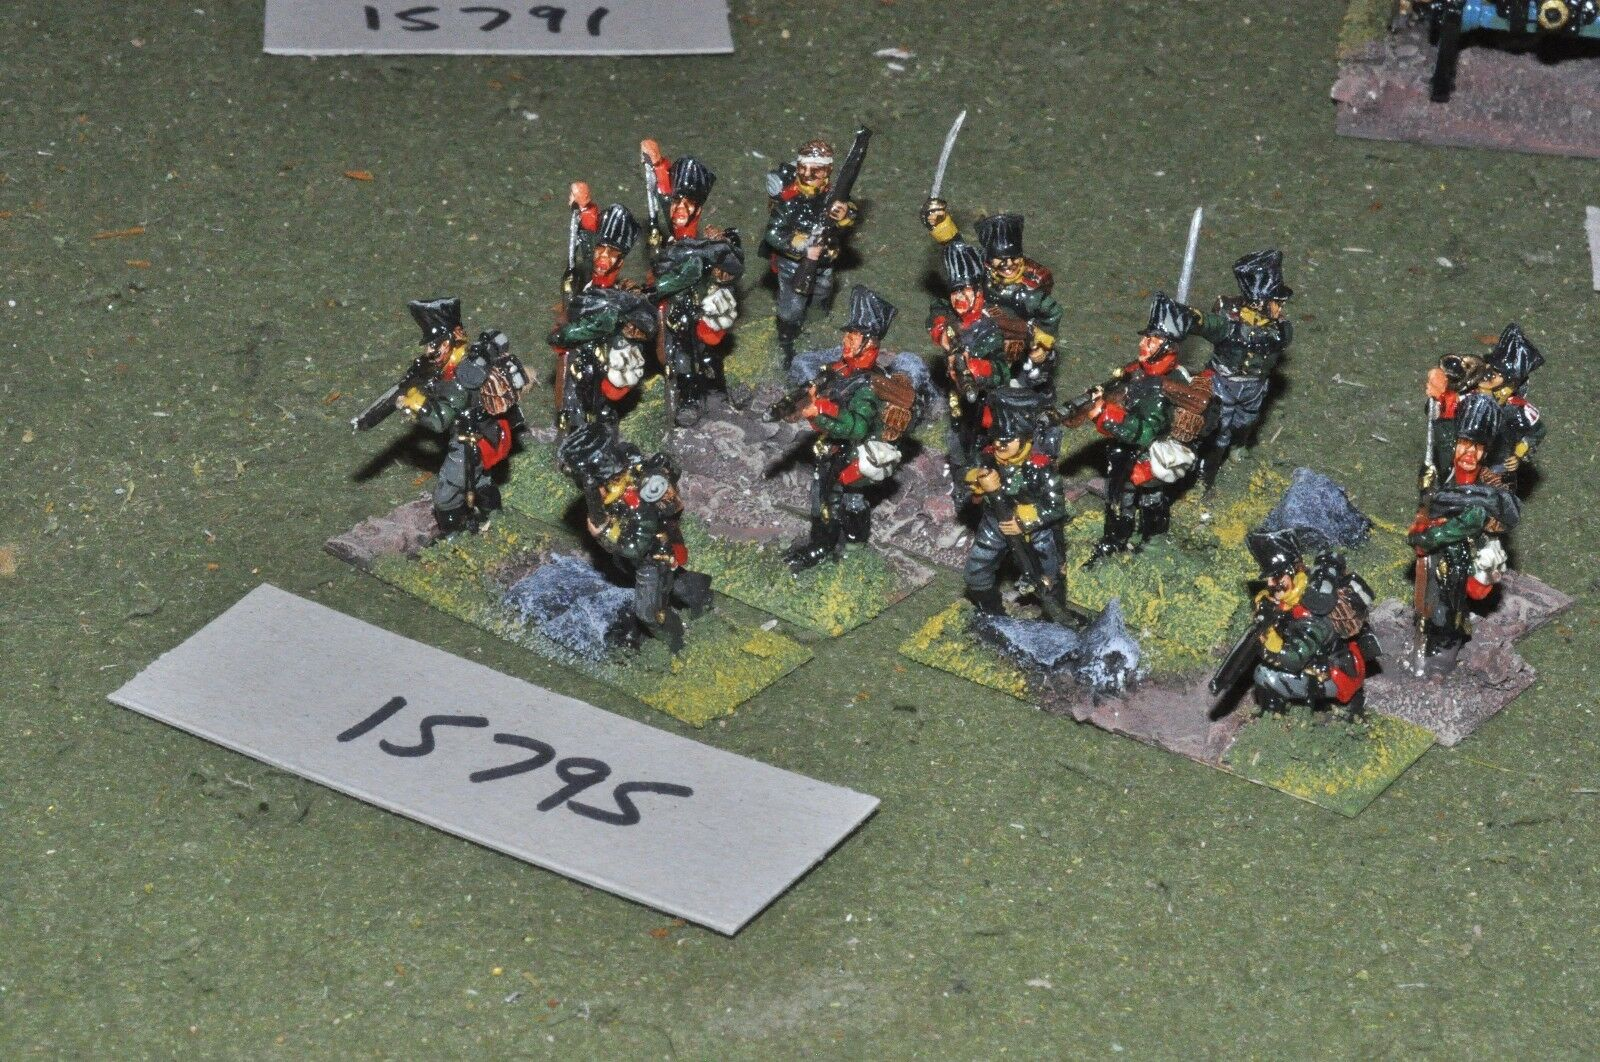 25mm napoleonic   prussian - jagers 14 figs painted by mac warren - inf (15795)